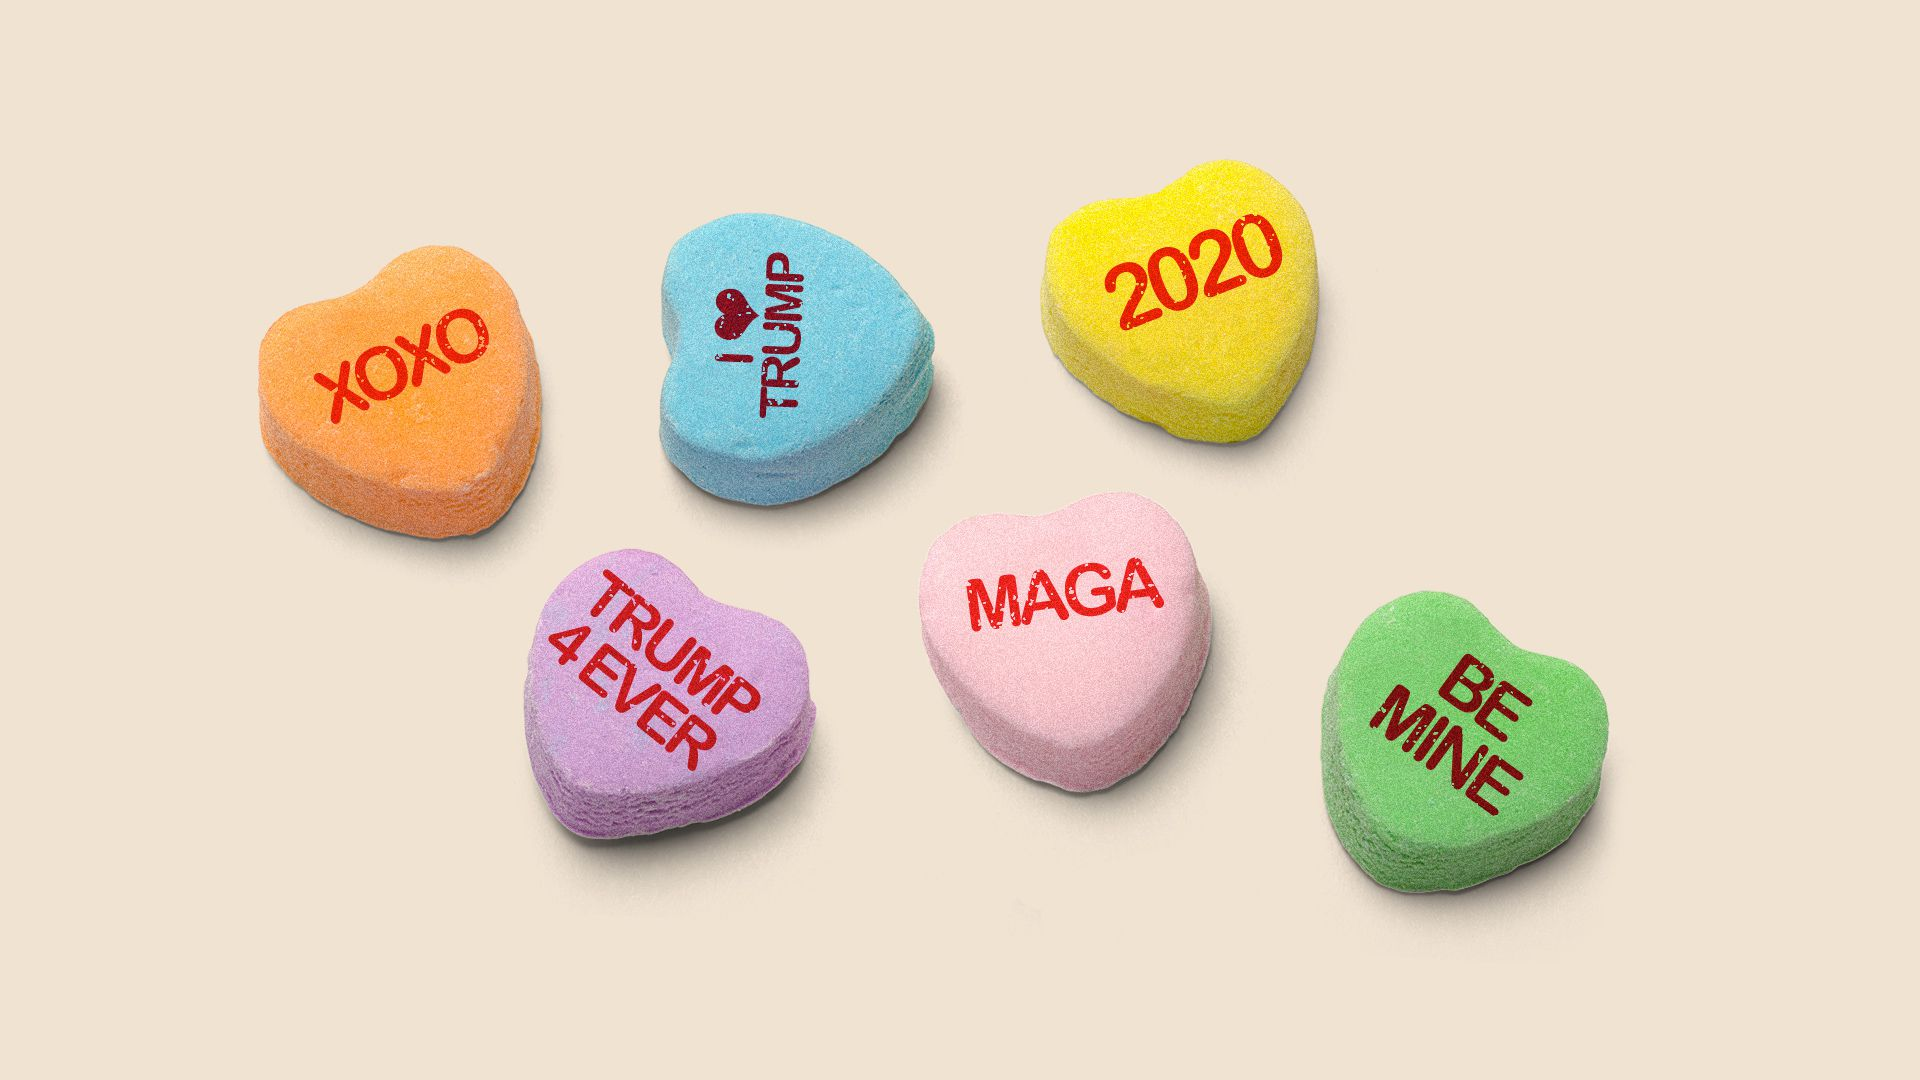 Illustration of valentines heart candies with messages written on them, like TRUMP 4 EVER, MAGA and I HEART TRUMP